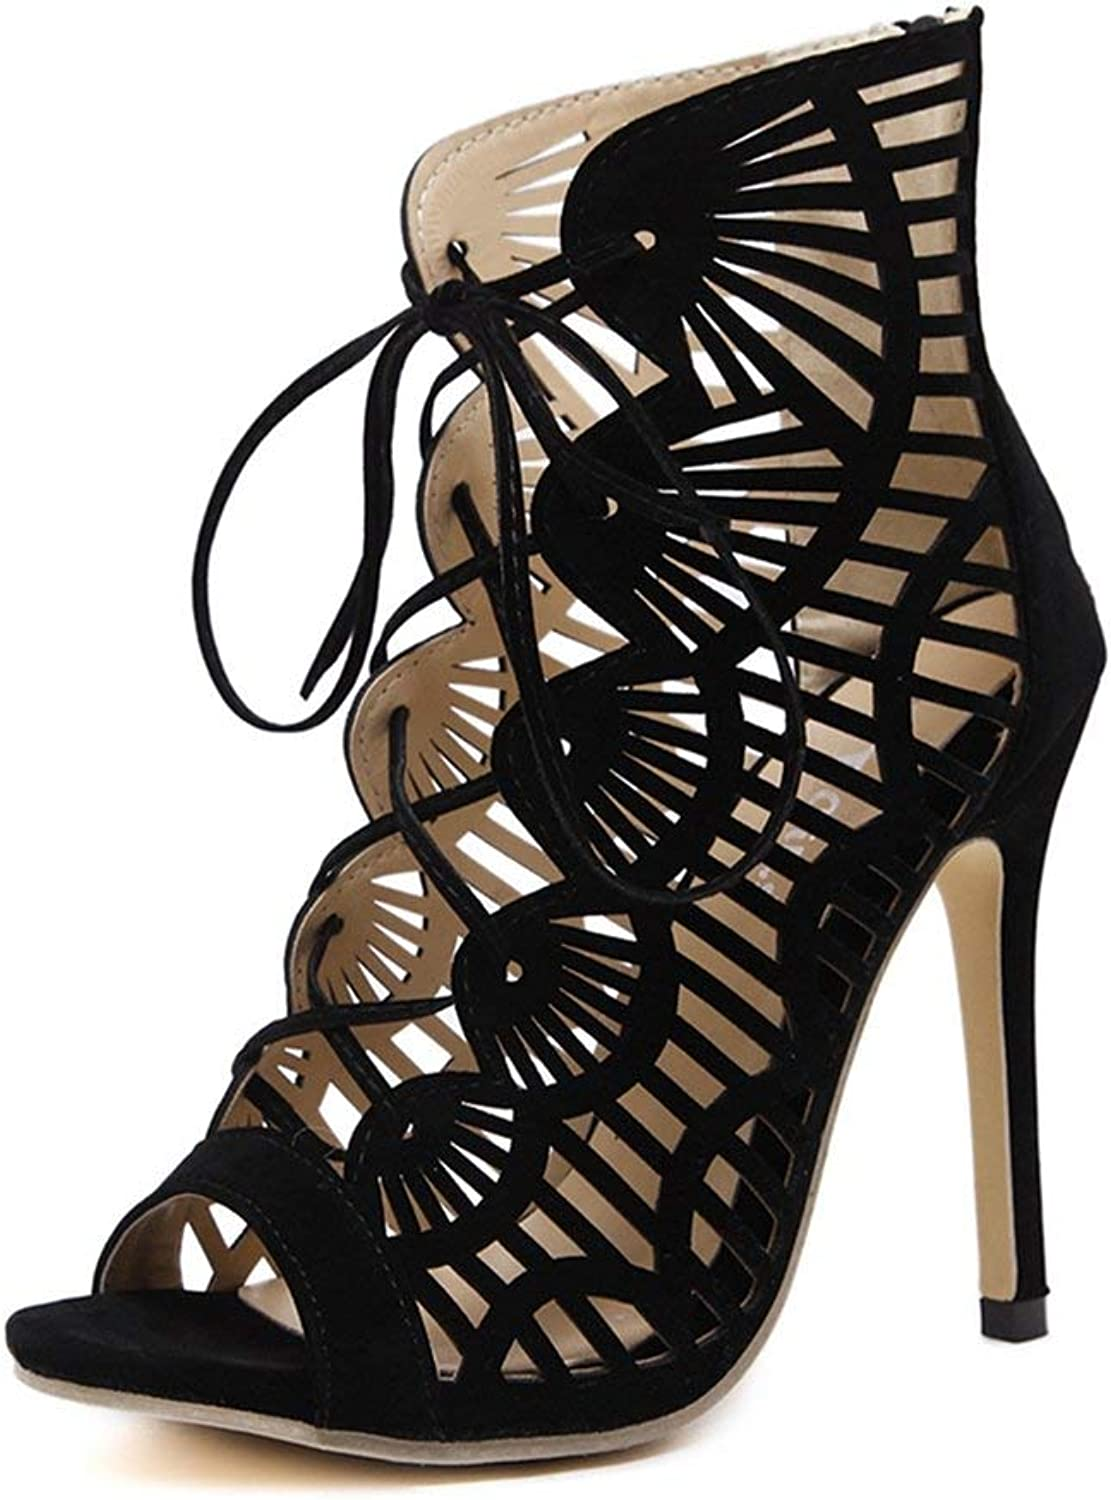 Fashion shoesbox Women's Stiletto High Heel Gladiator Strappy Sandals Peep Toe Caged Platform Anti-Slip Lace Up Dress Pump